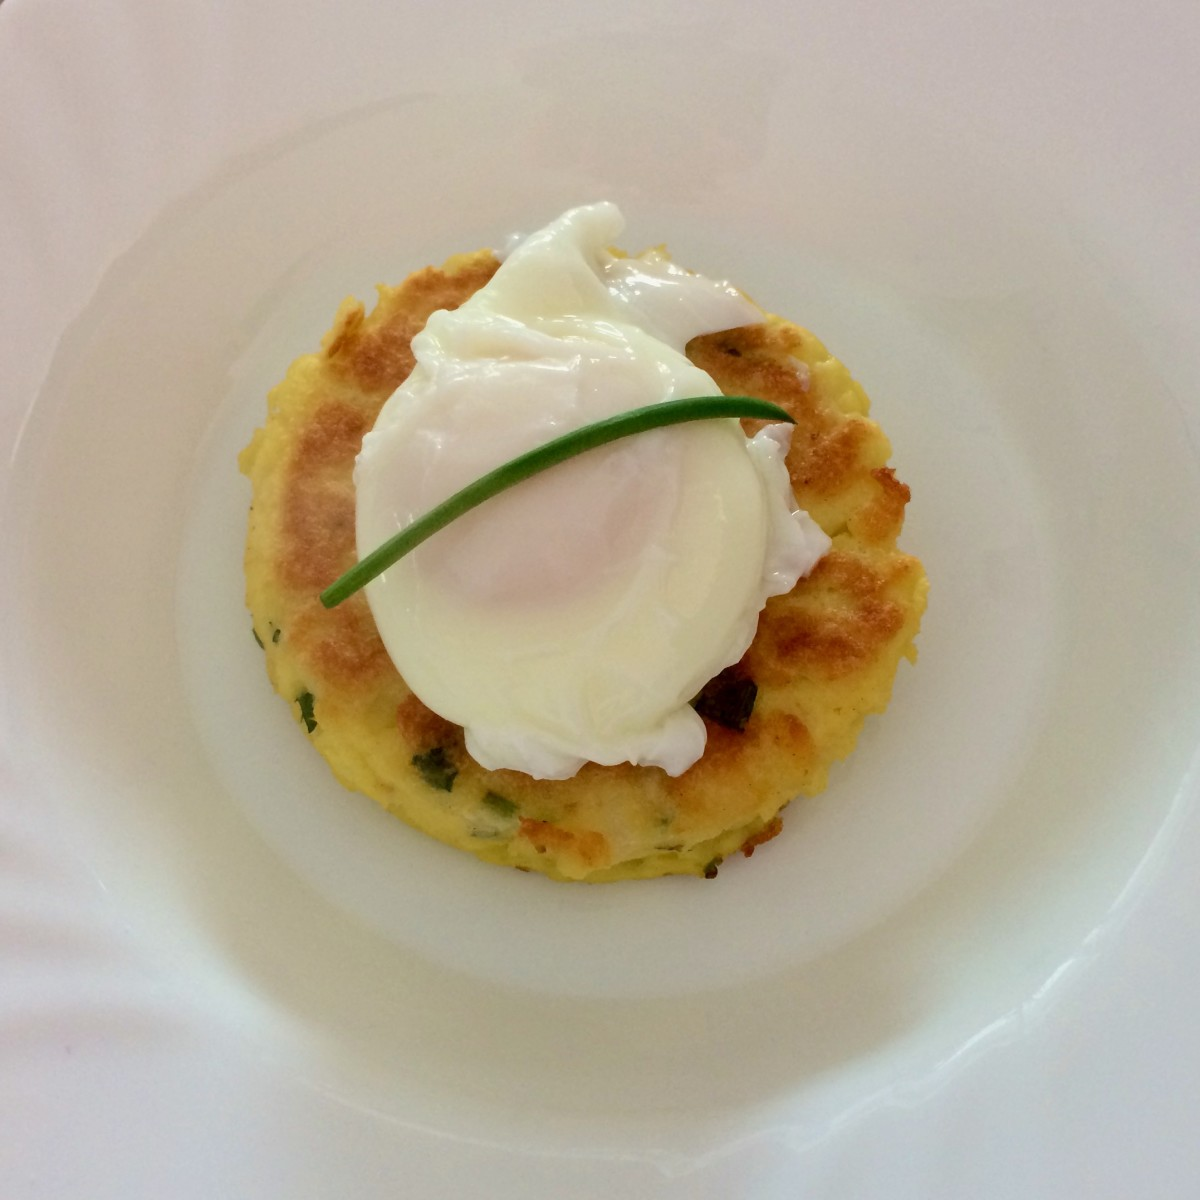 Leftover Foods: Potato Cake With a Poached Egg